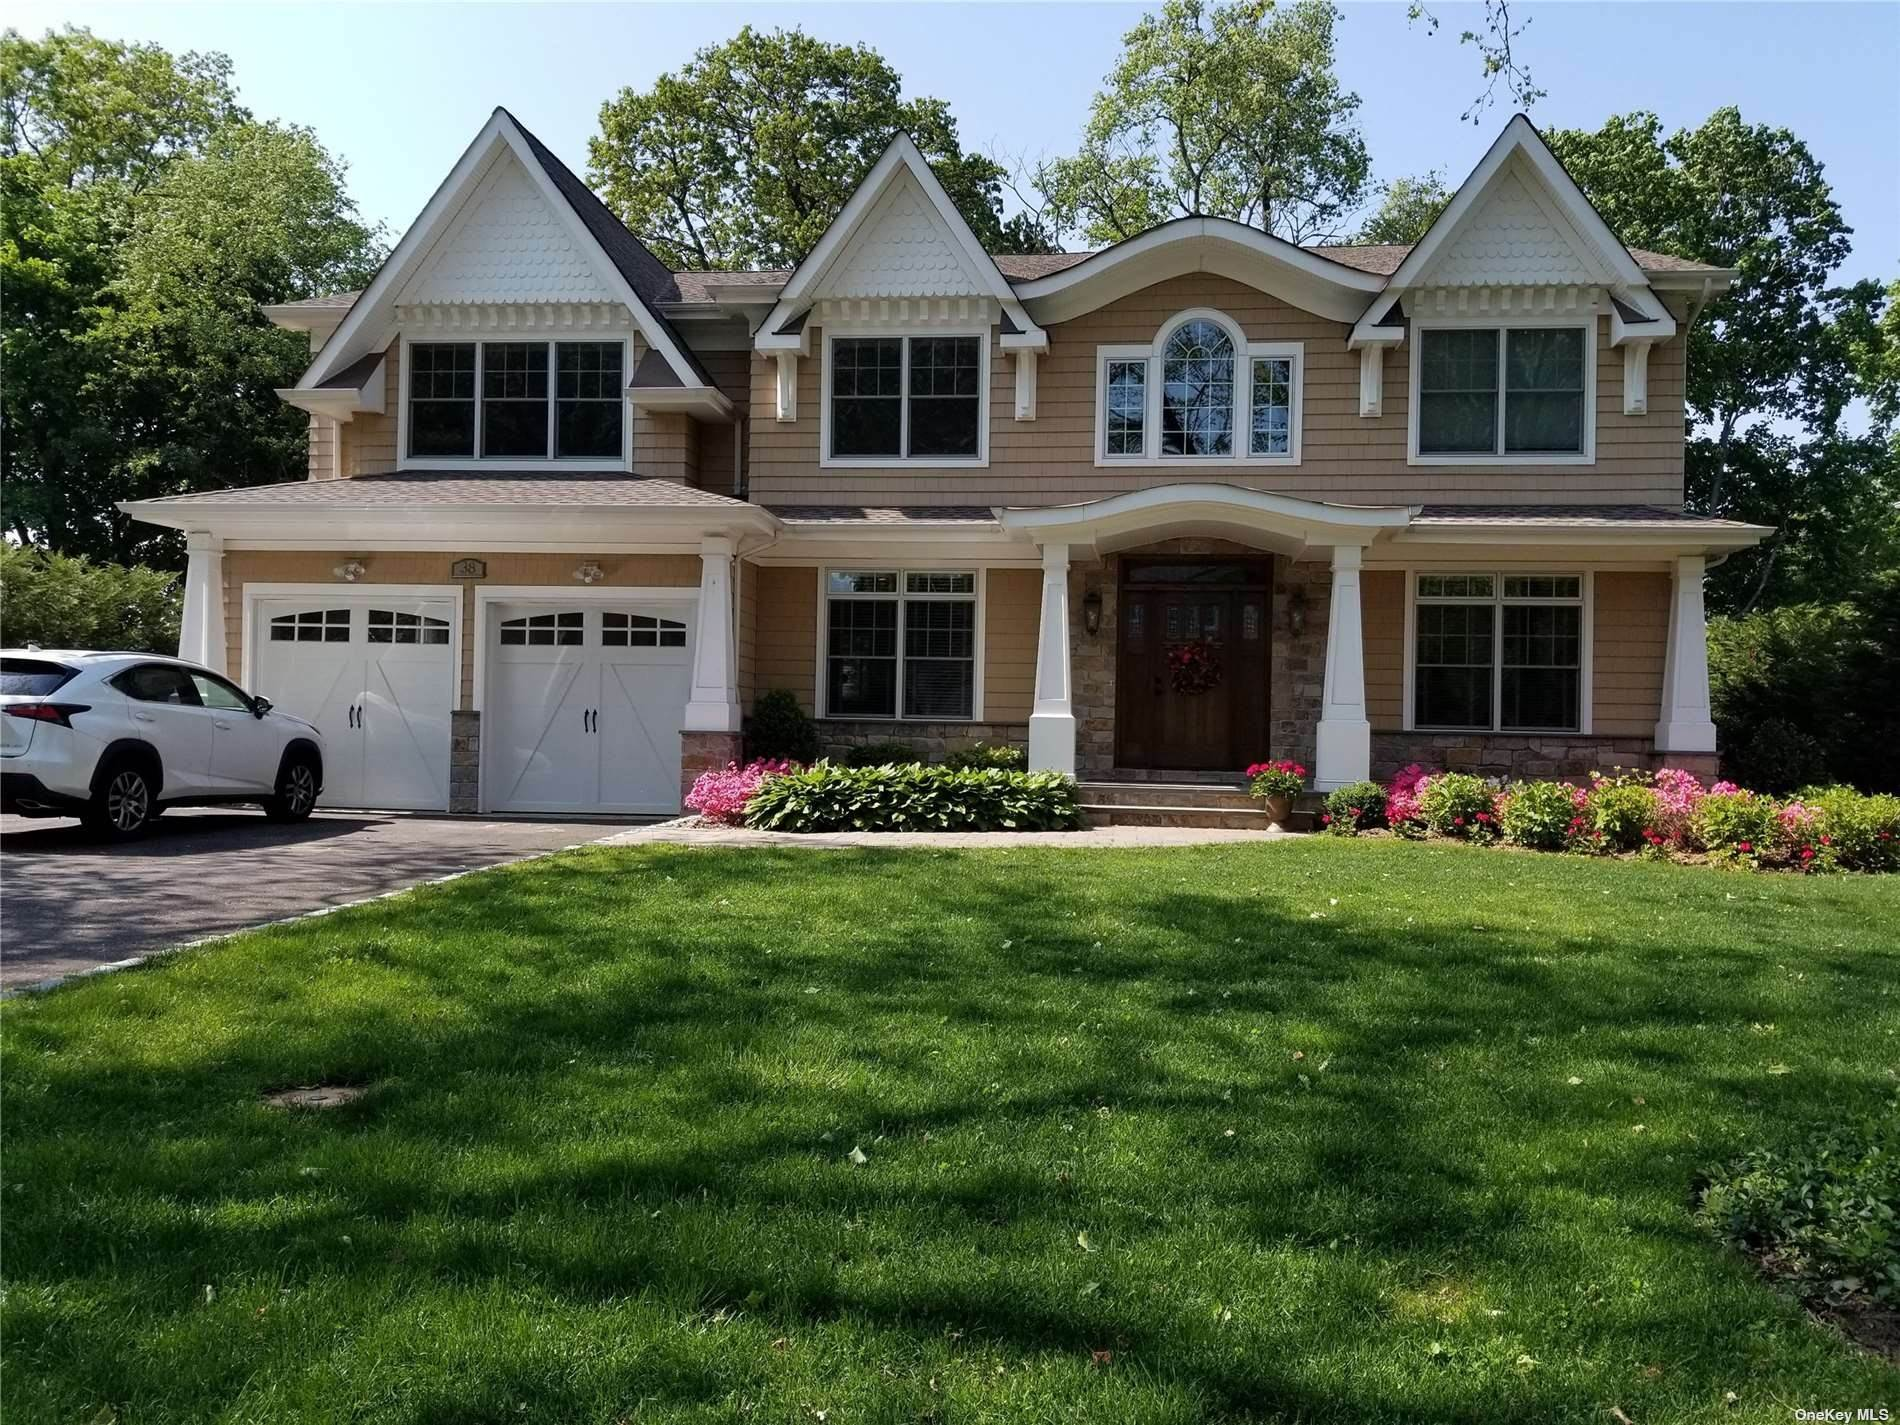 Residential for Sale at 38 Sycamore Drive S Roslyn, New York 11576 United States